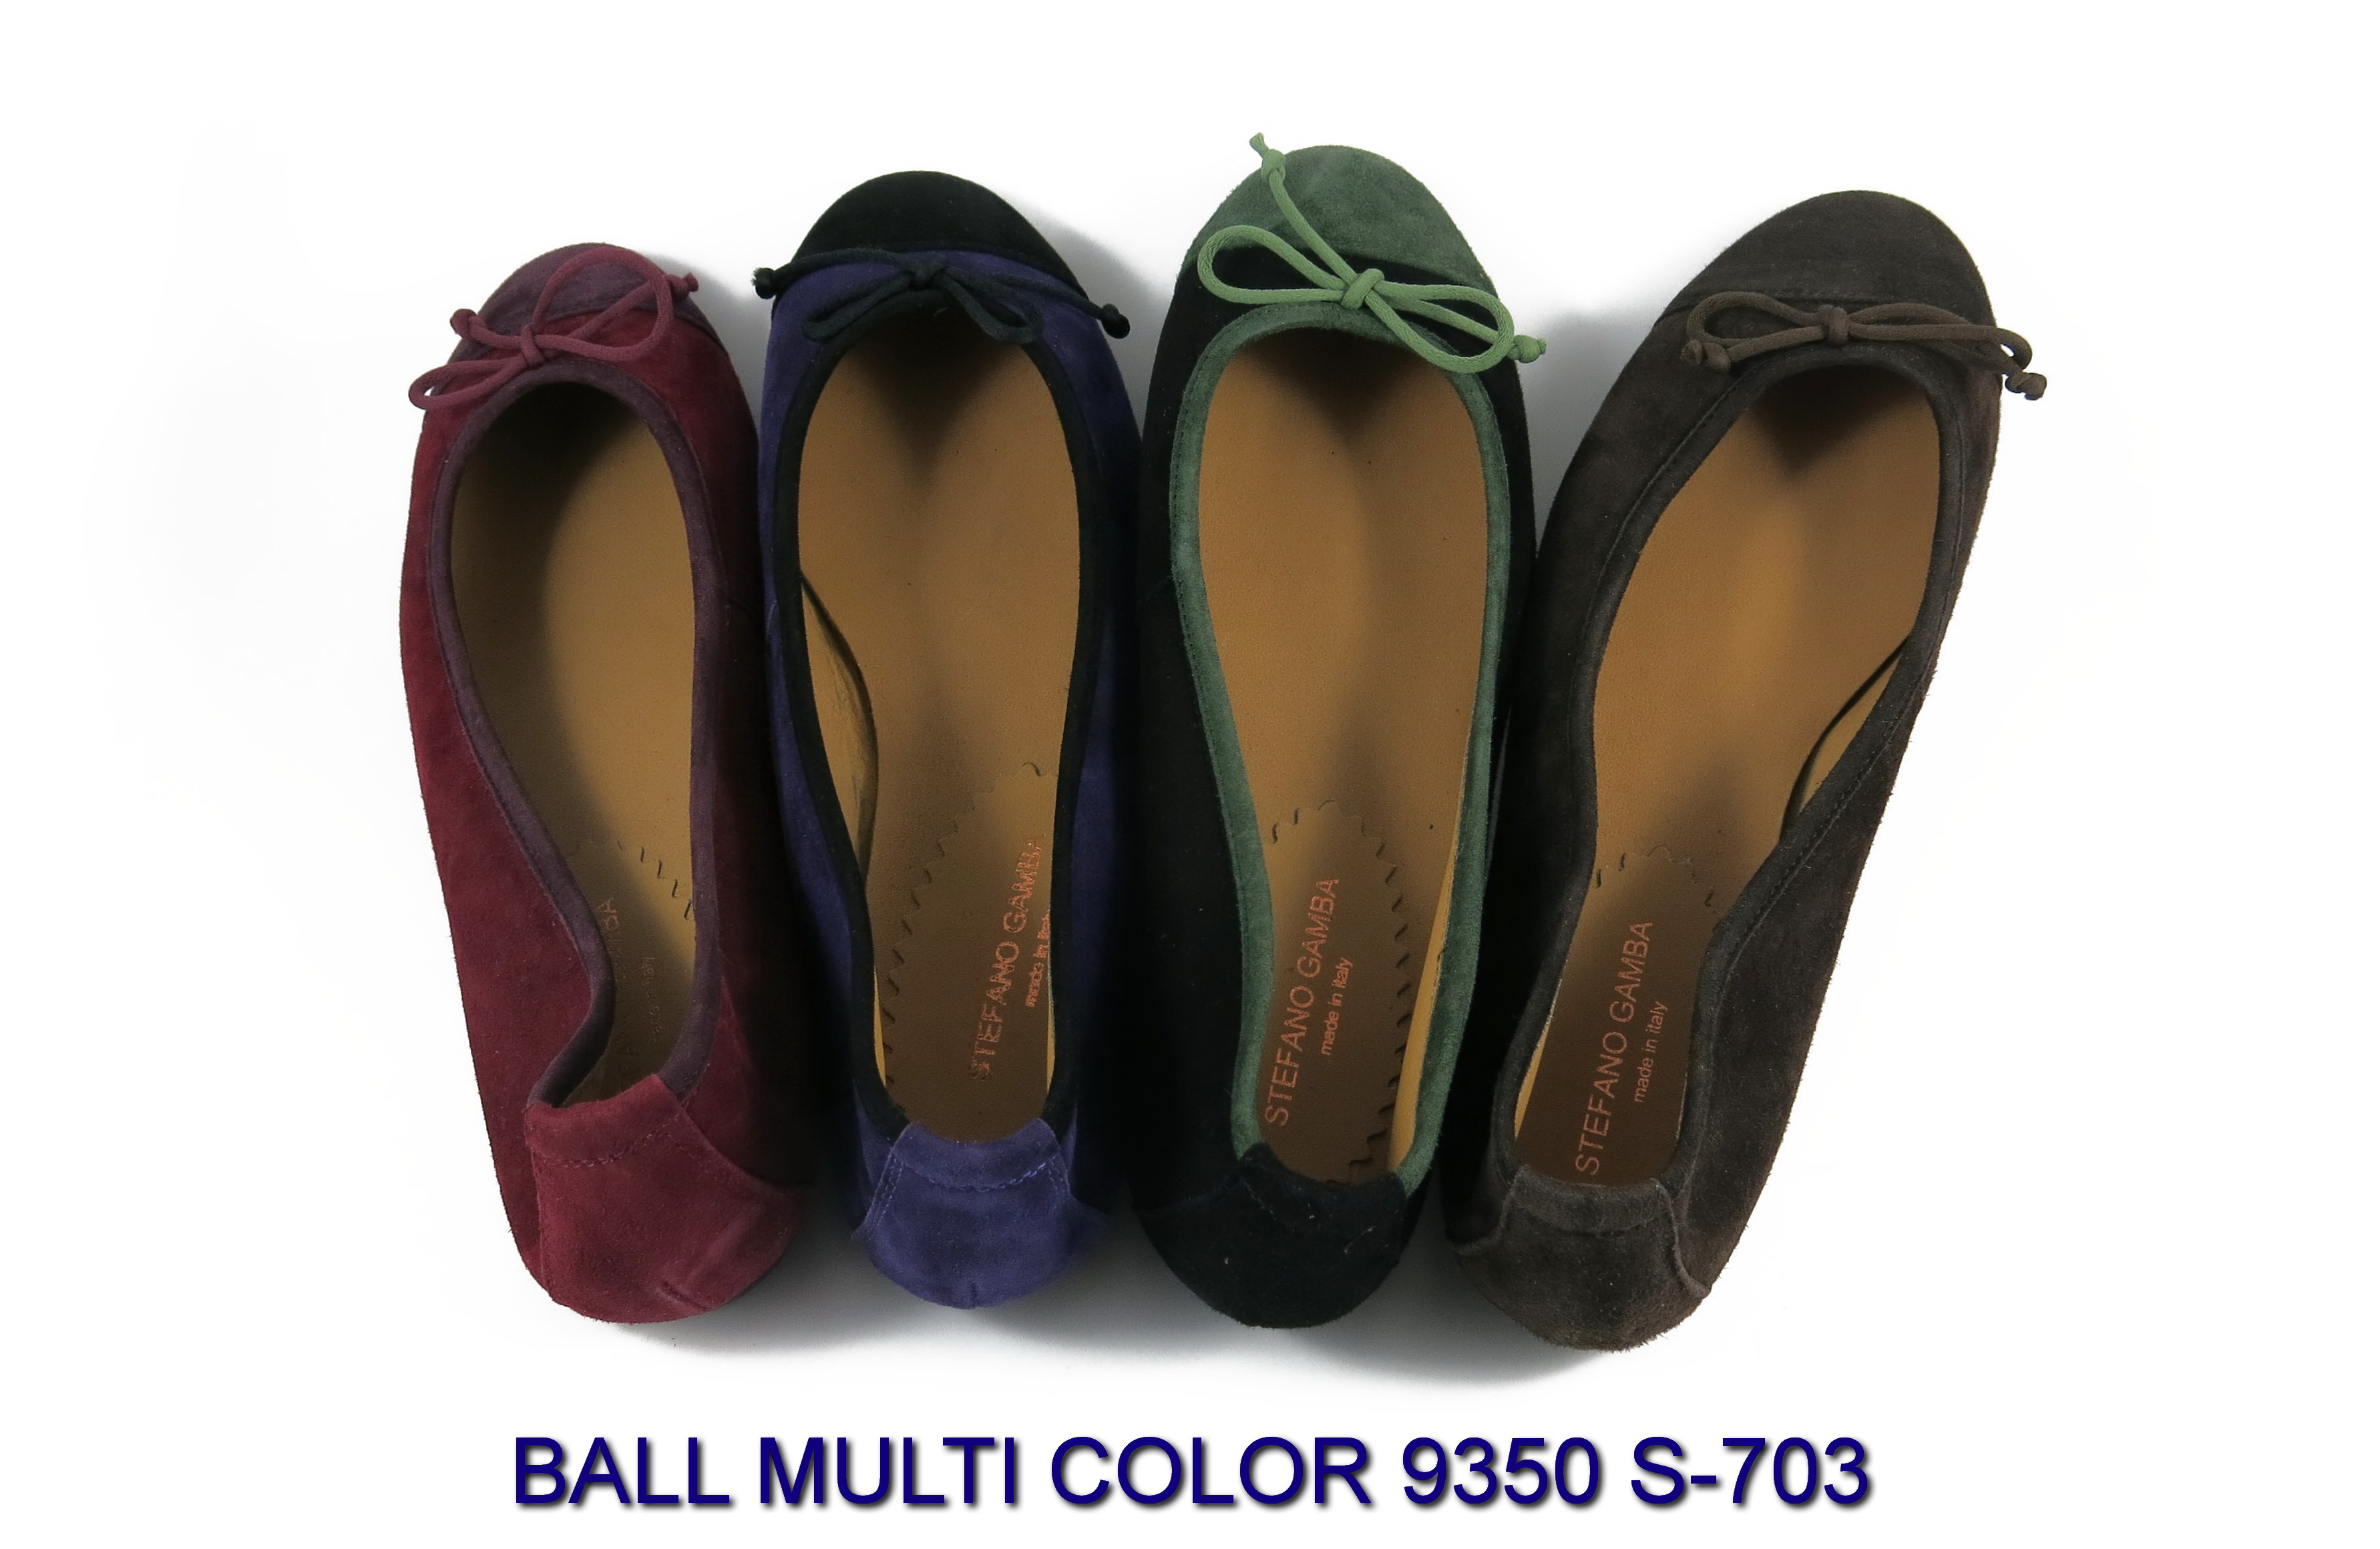 BALL-MULTI-COLOR-9350-S-703